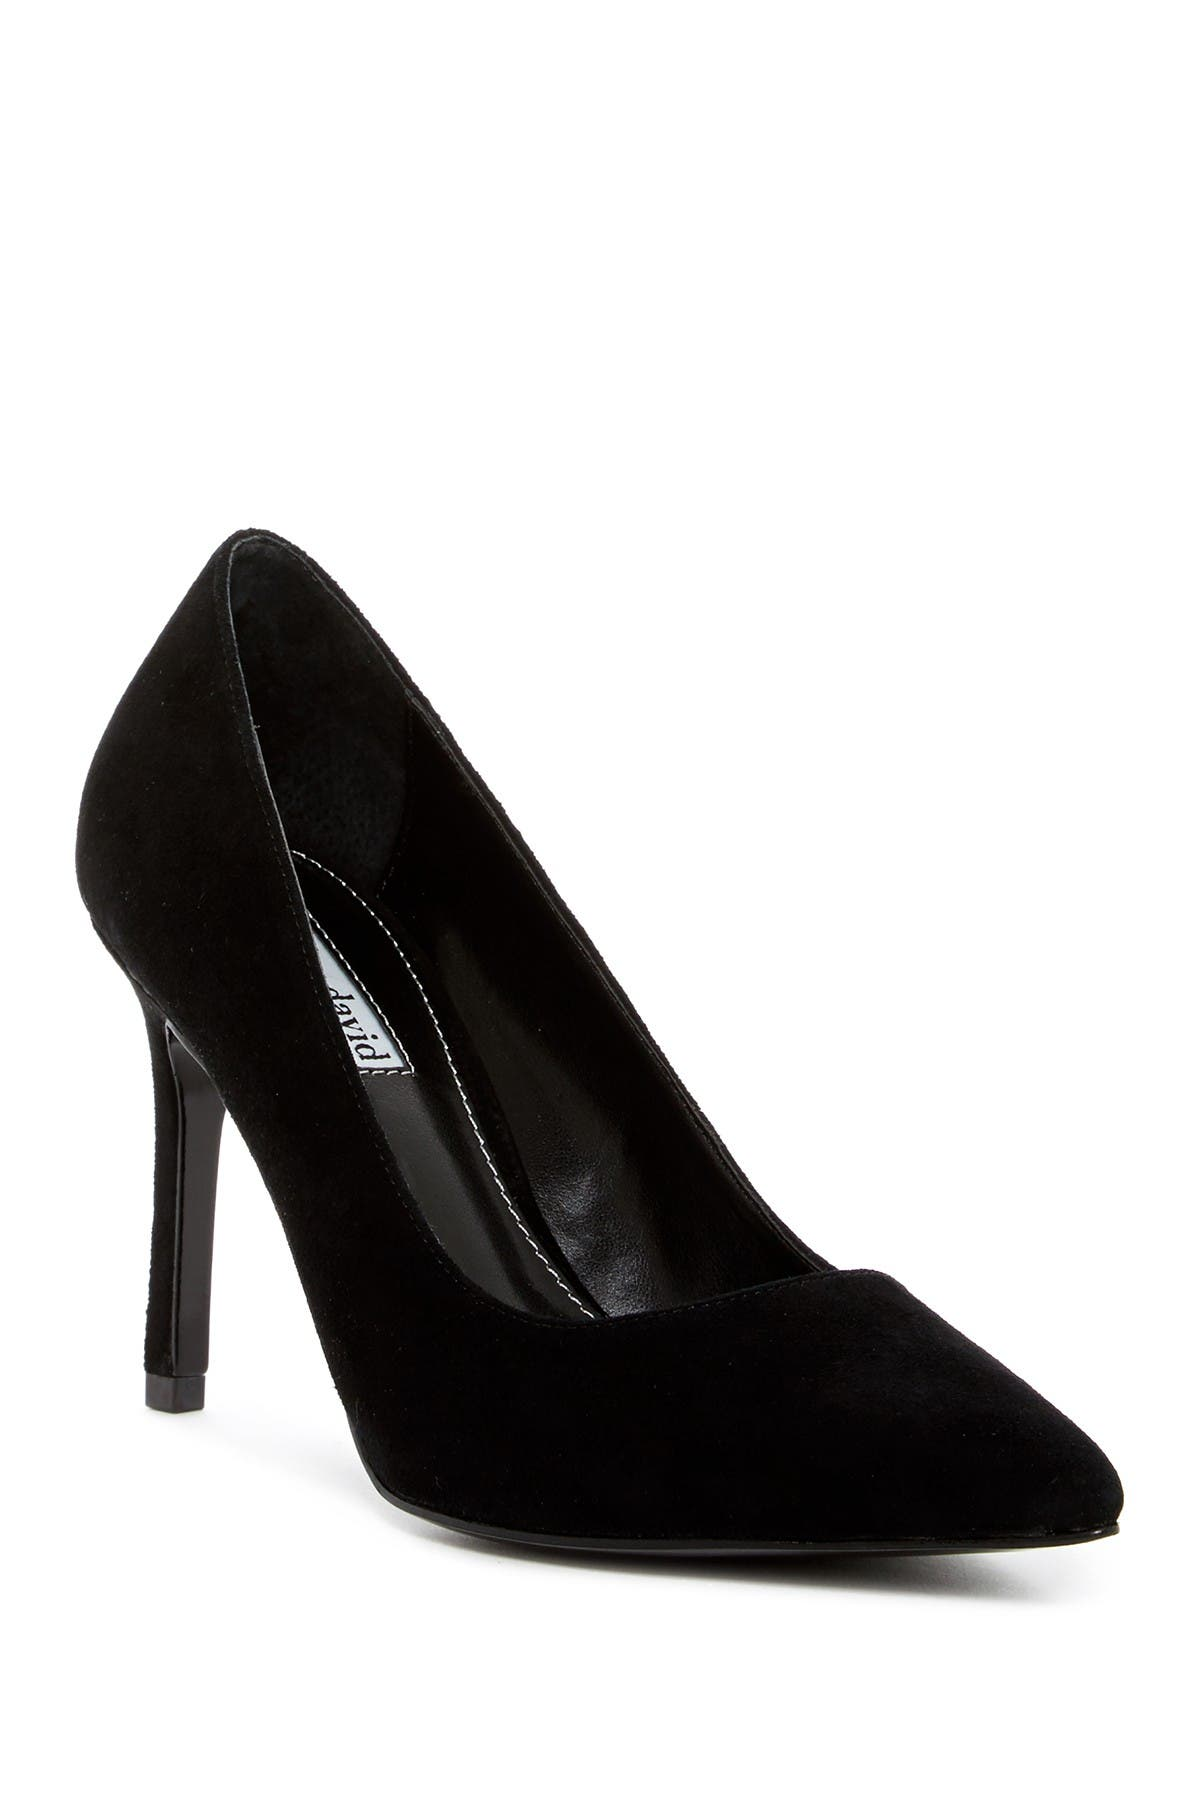 Image of Charles David Denise Pointed Toe Suede Pump